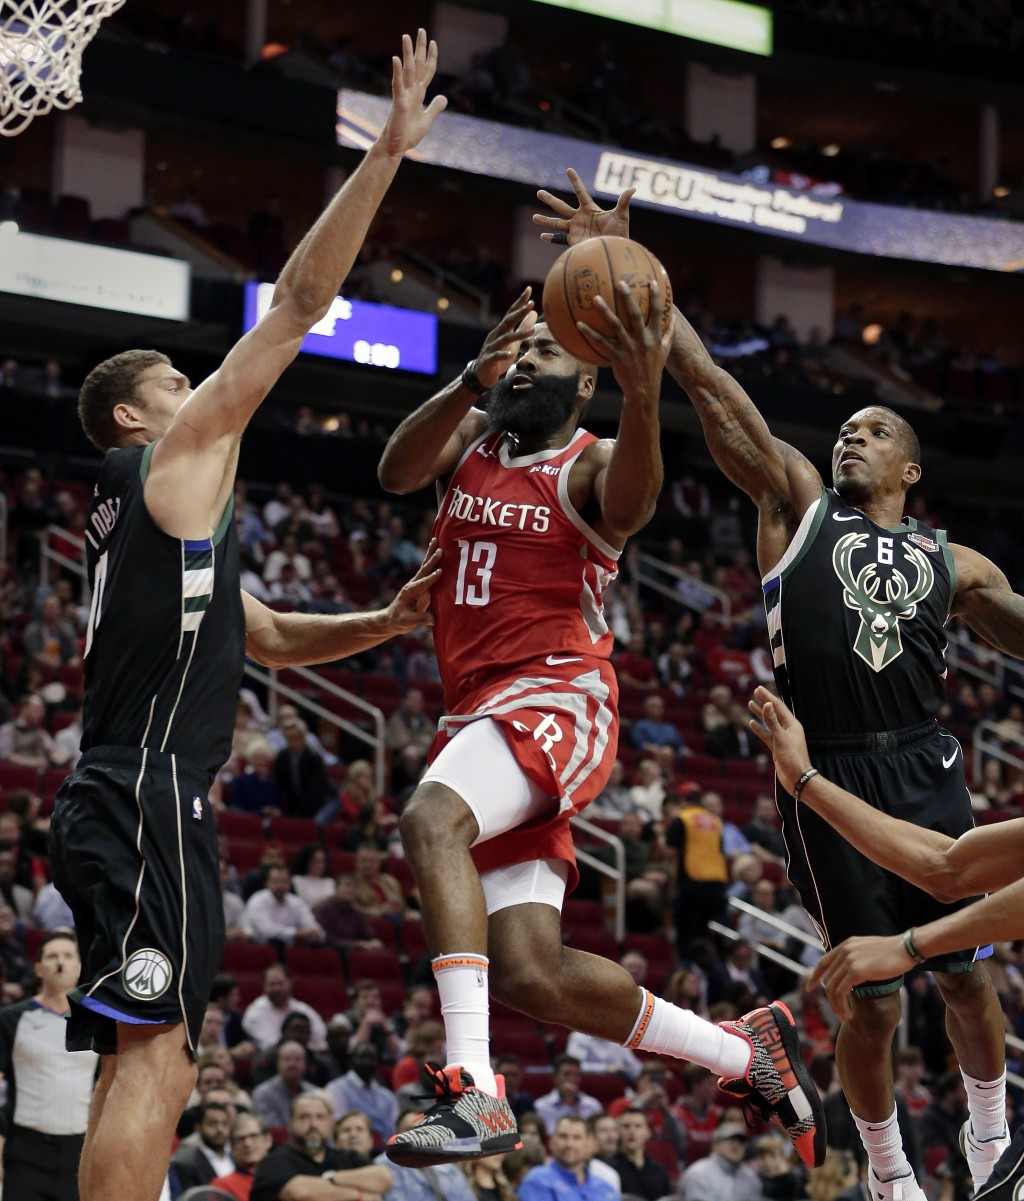 Houston Rockets guard James Harden (13) puts up a shot between Milwaukee Bucks center Brook Lopez (11) and guard Eric Bledsoe (6) during the first hal...